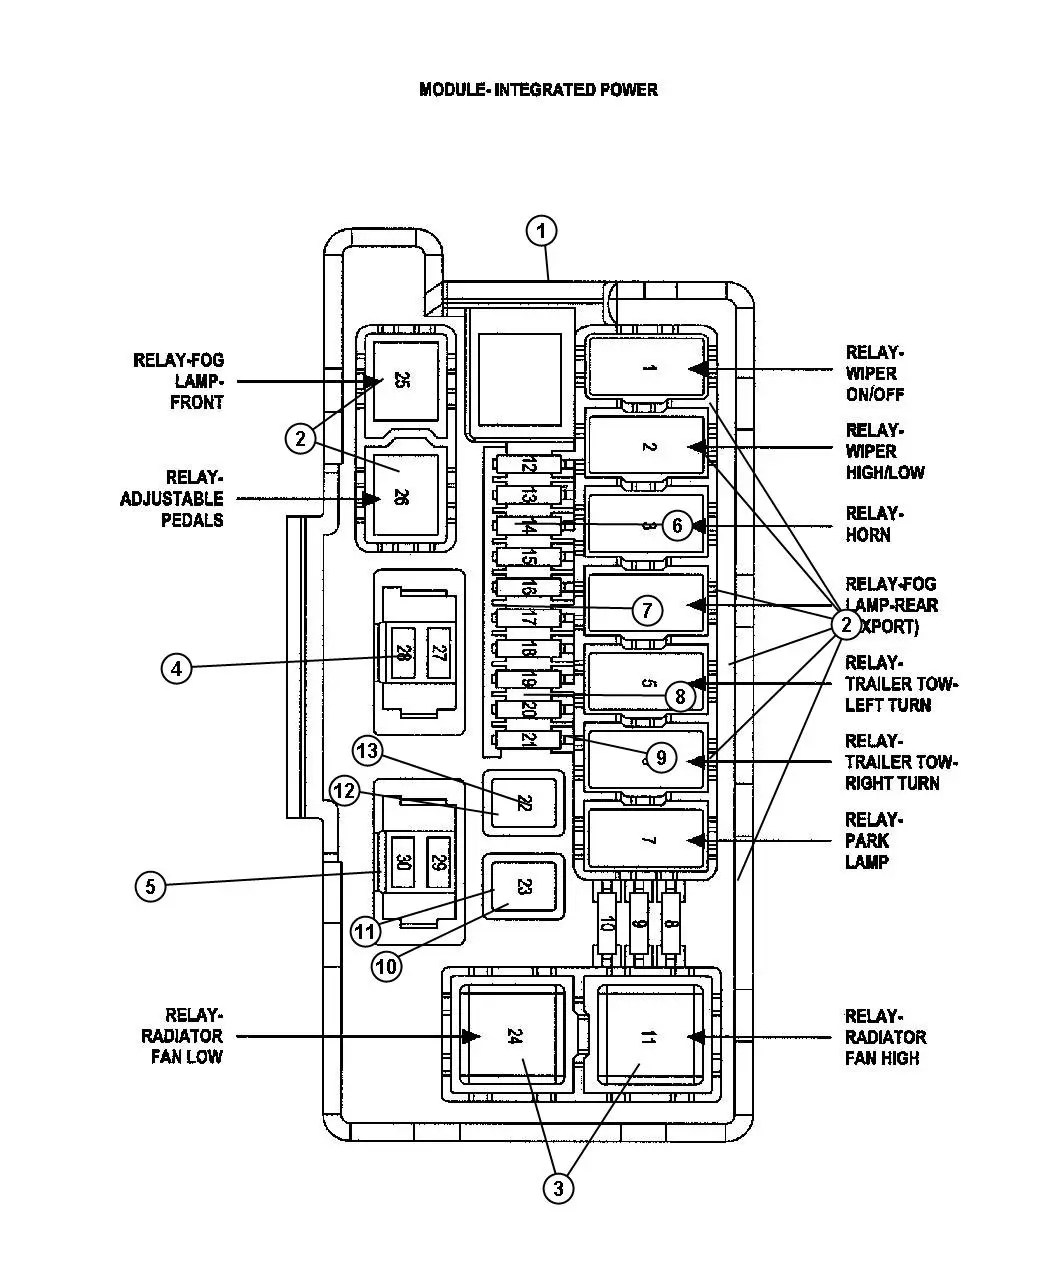 hight resolution of 2006 jeep liberty fuse diagram wiring library2006 jeep liberty horn wiring anything wiring diagrams